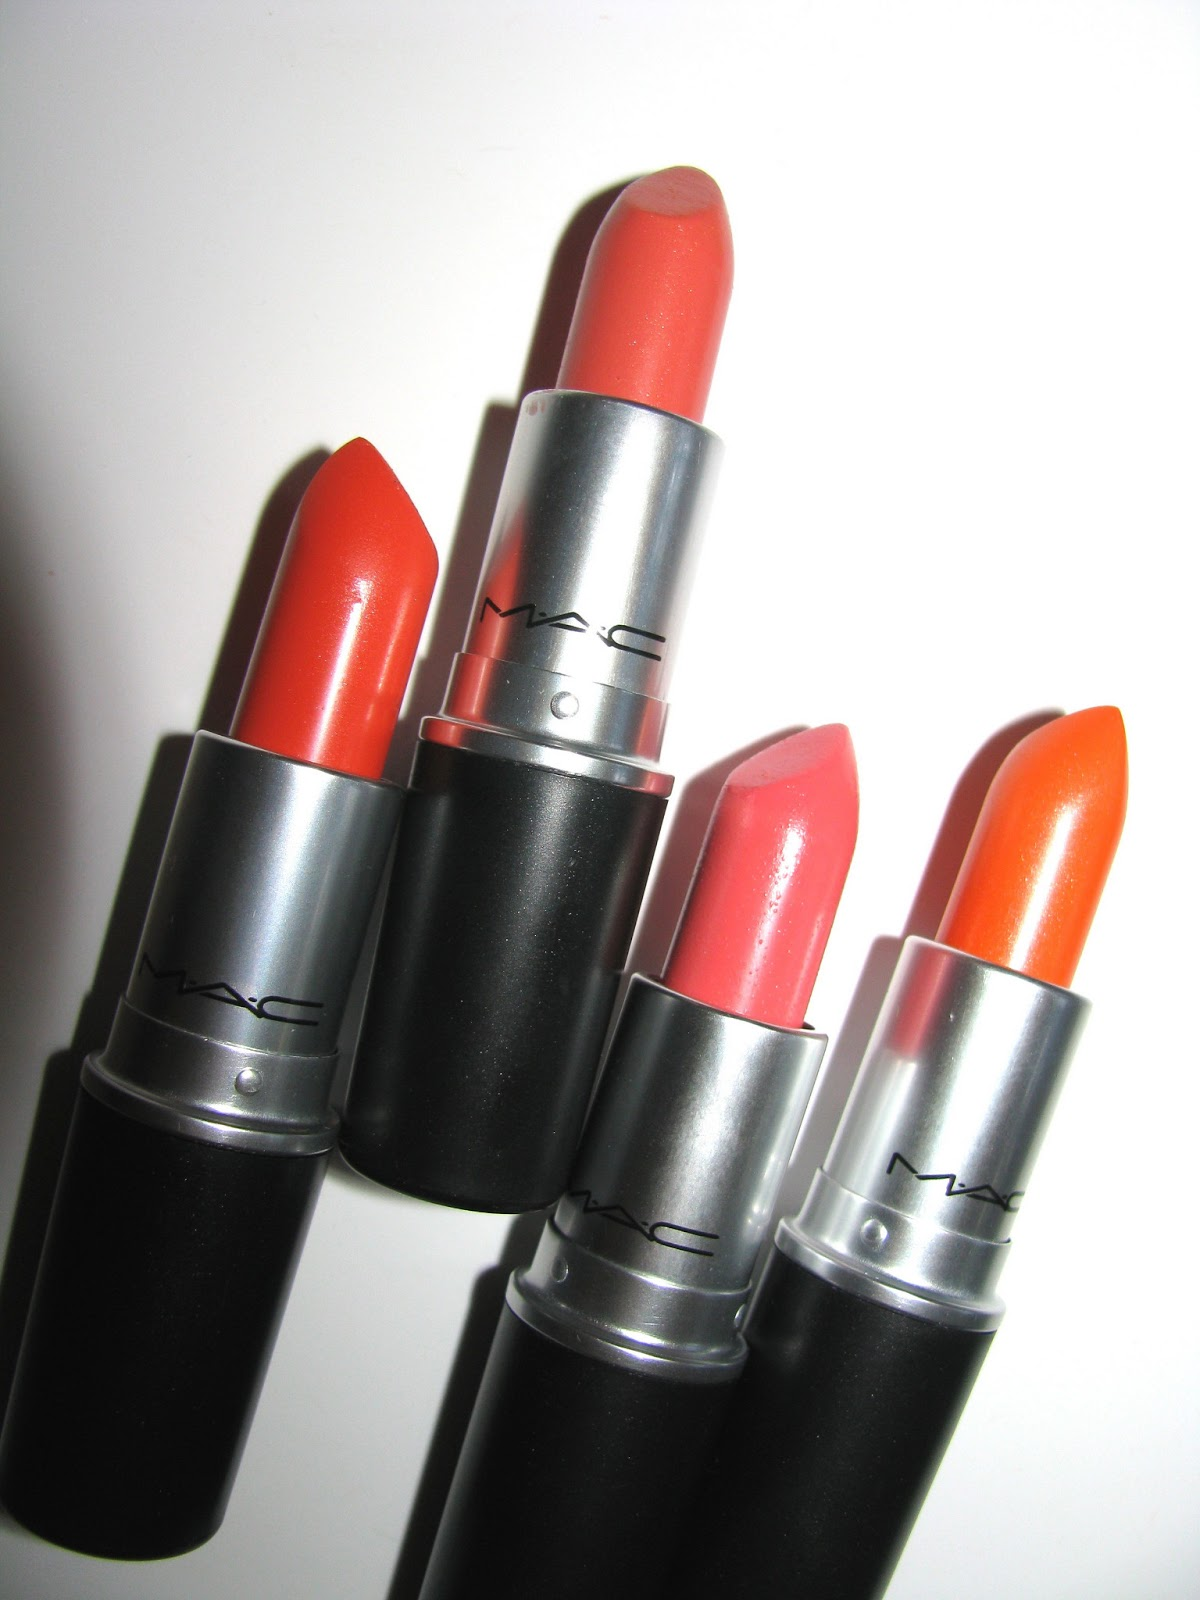 Mac All The Right Angles Makeup Collection For Spring 2016: The Beauty Alchemist: MAC All About Orange Lipsticks In